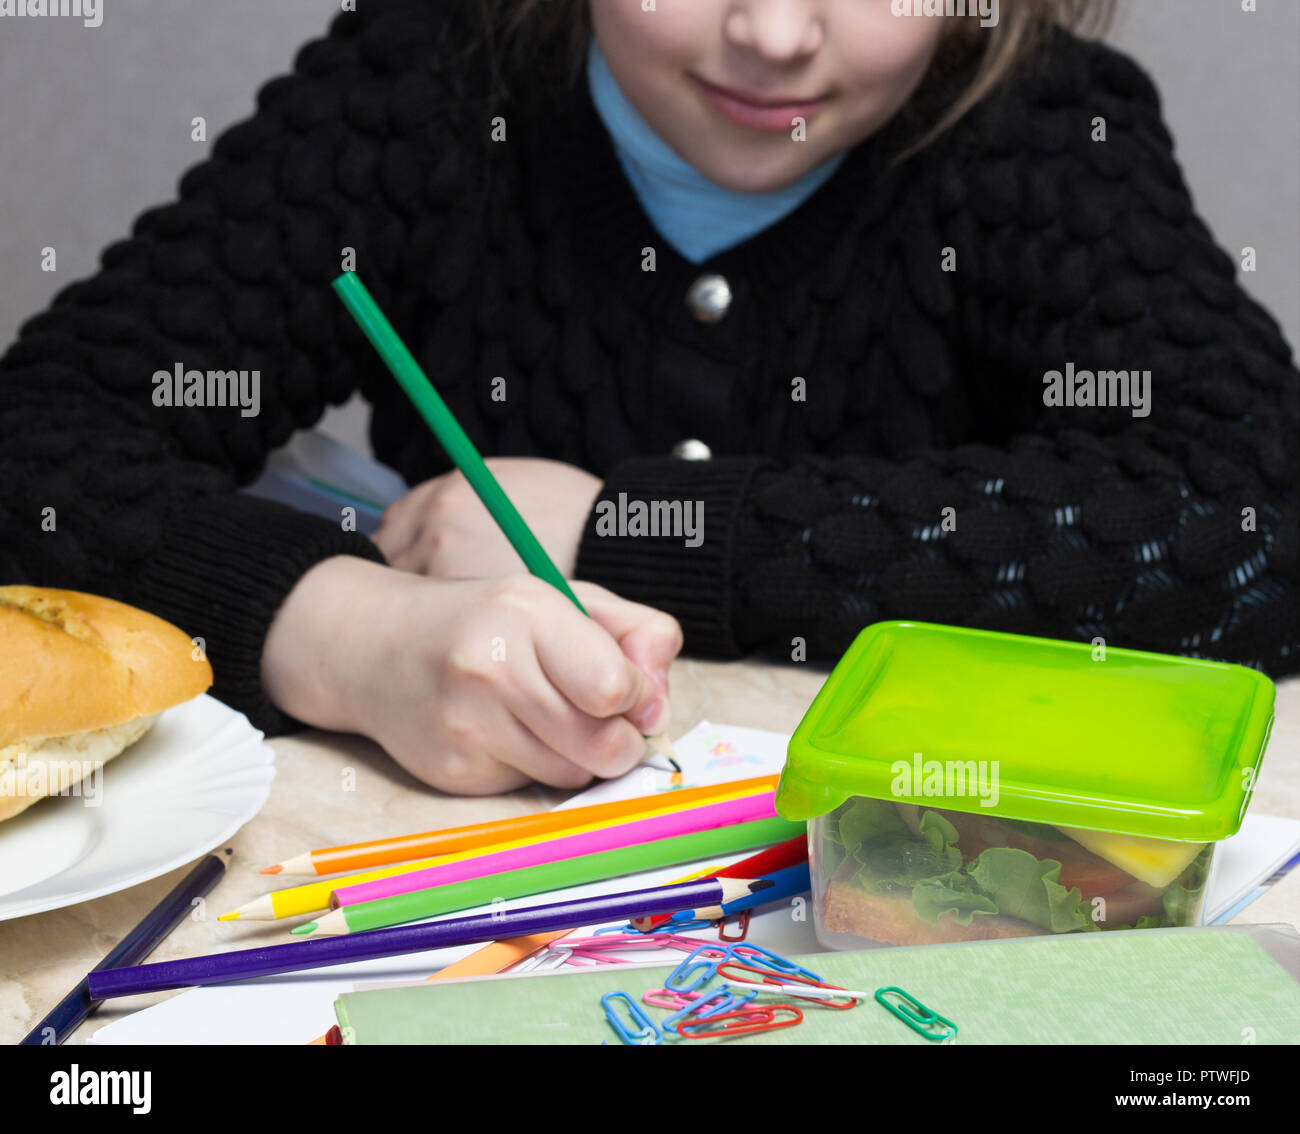 the girl does the lessons, on the table lies a sandwich, fruit, nuts, textbooks, pencils, nosh - Stock Image